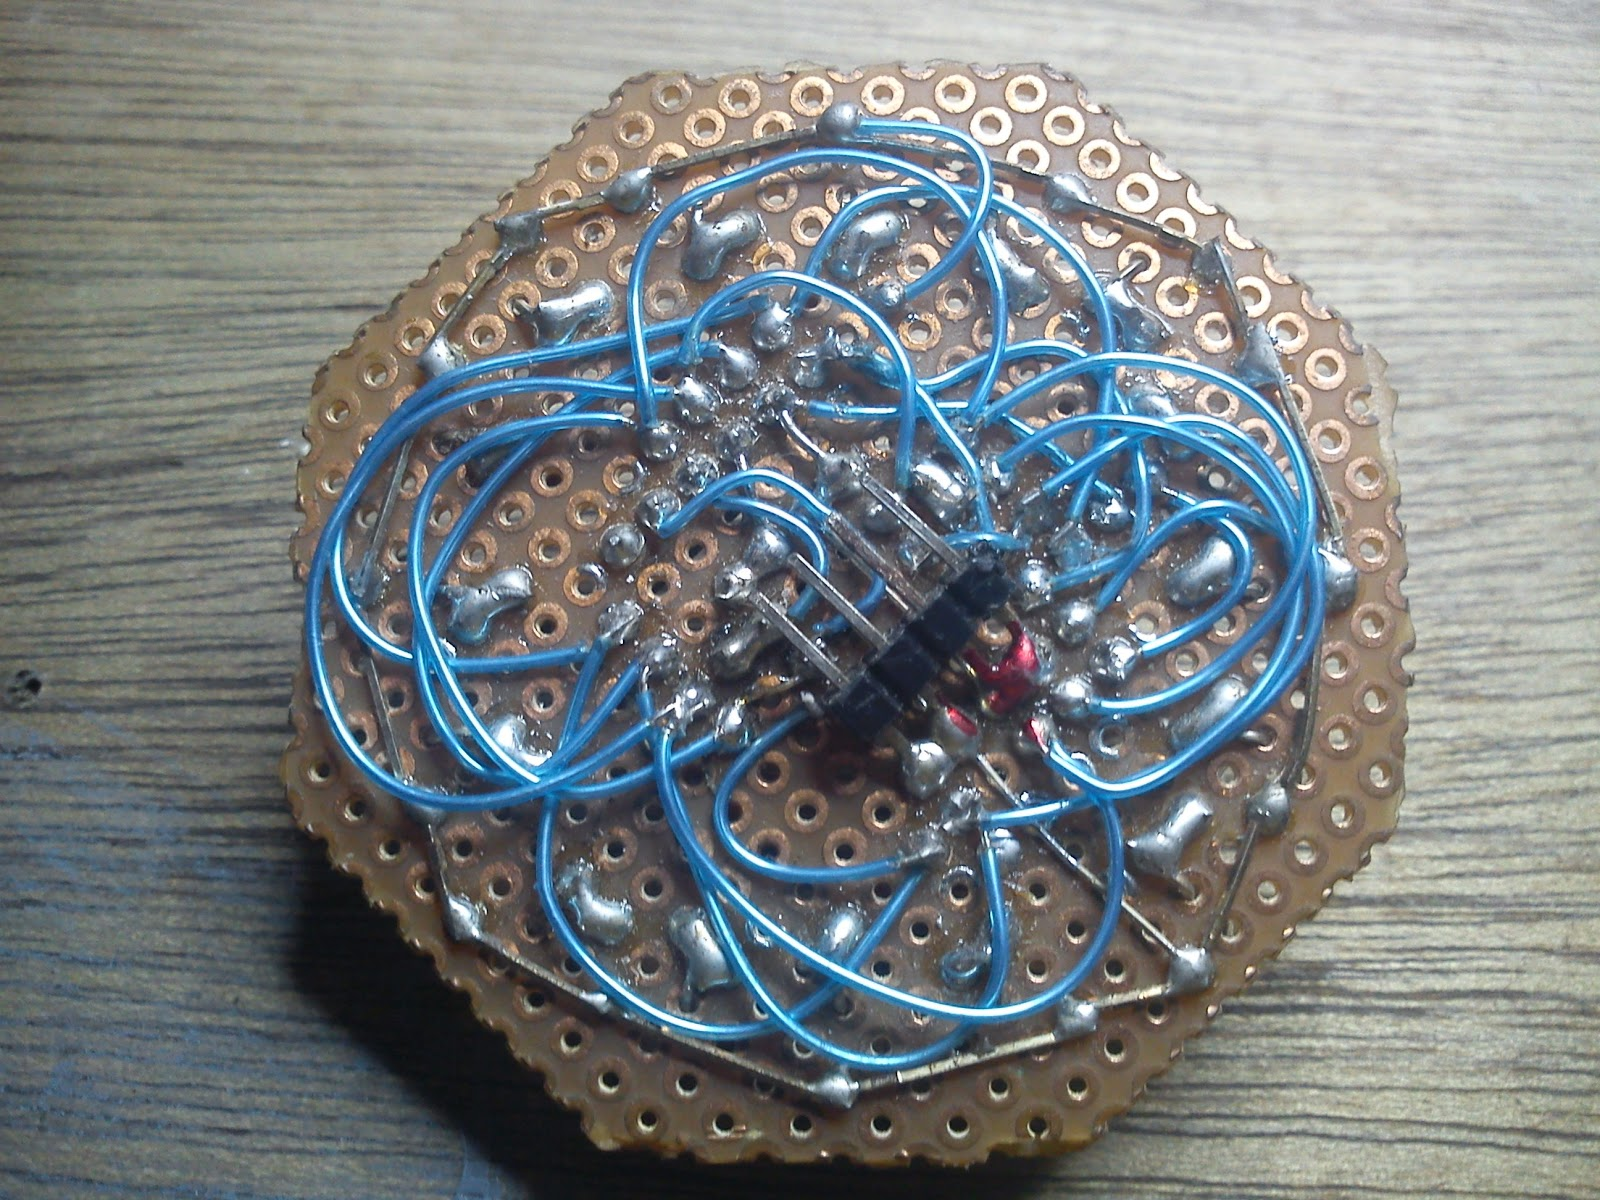 Iron Man Chest Arc Reactor (PIC12F1840) V3.00